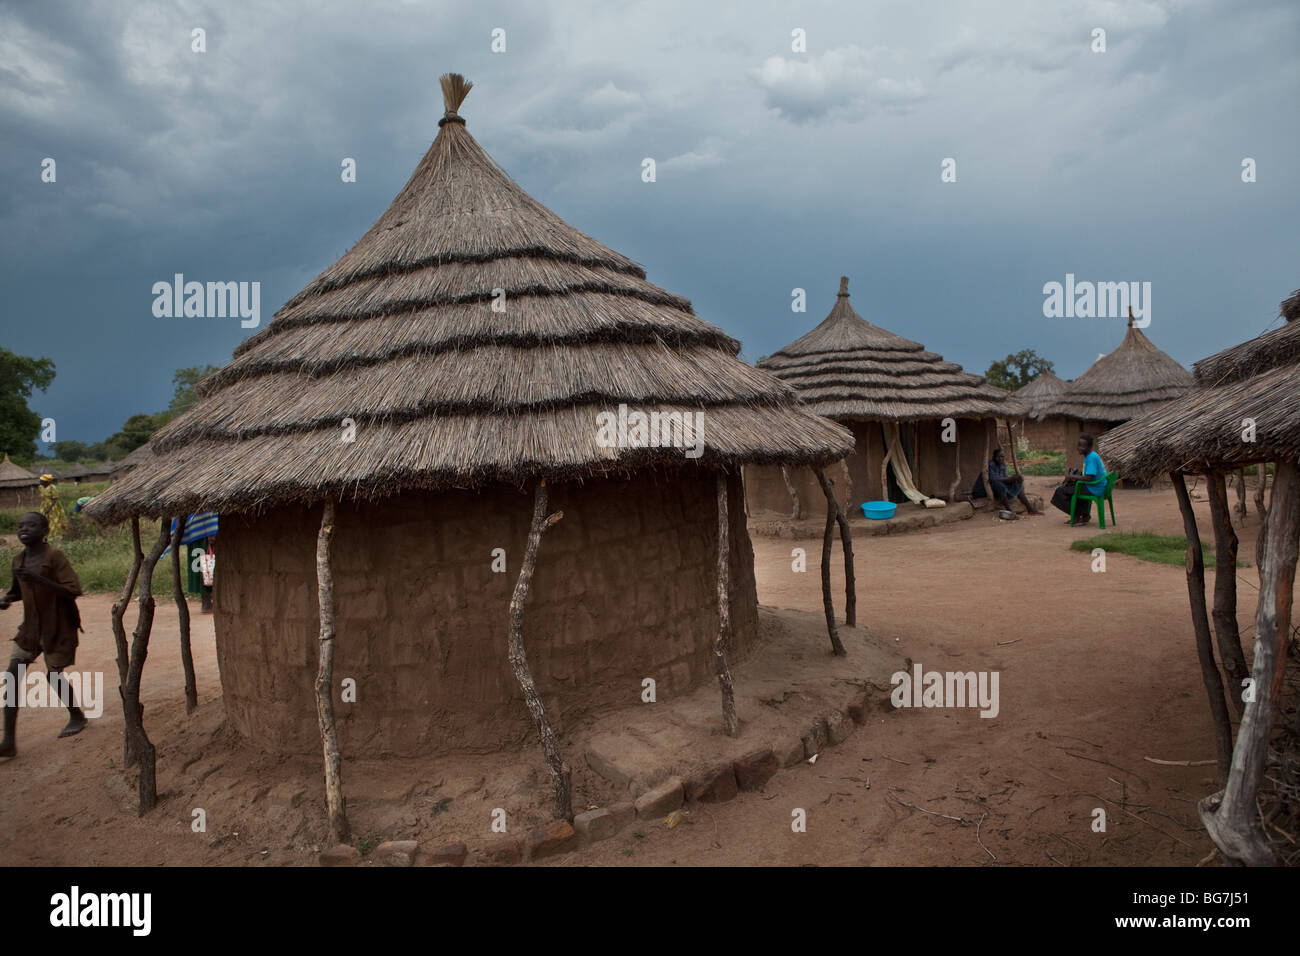 Mud and grass houses in Acowa refugee camp in Amuria District, Uganda, East Africa. - Stock Image